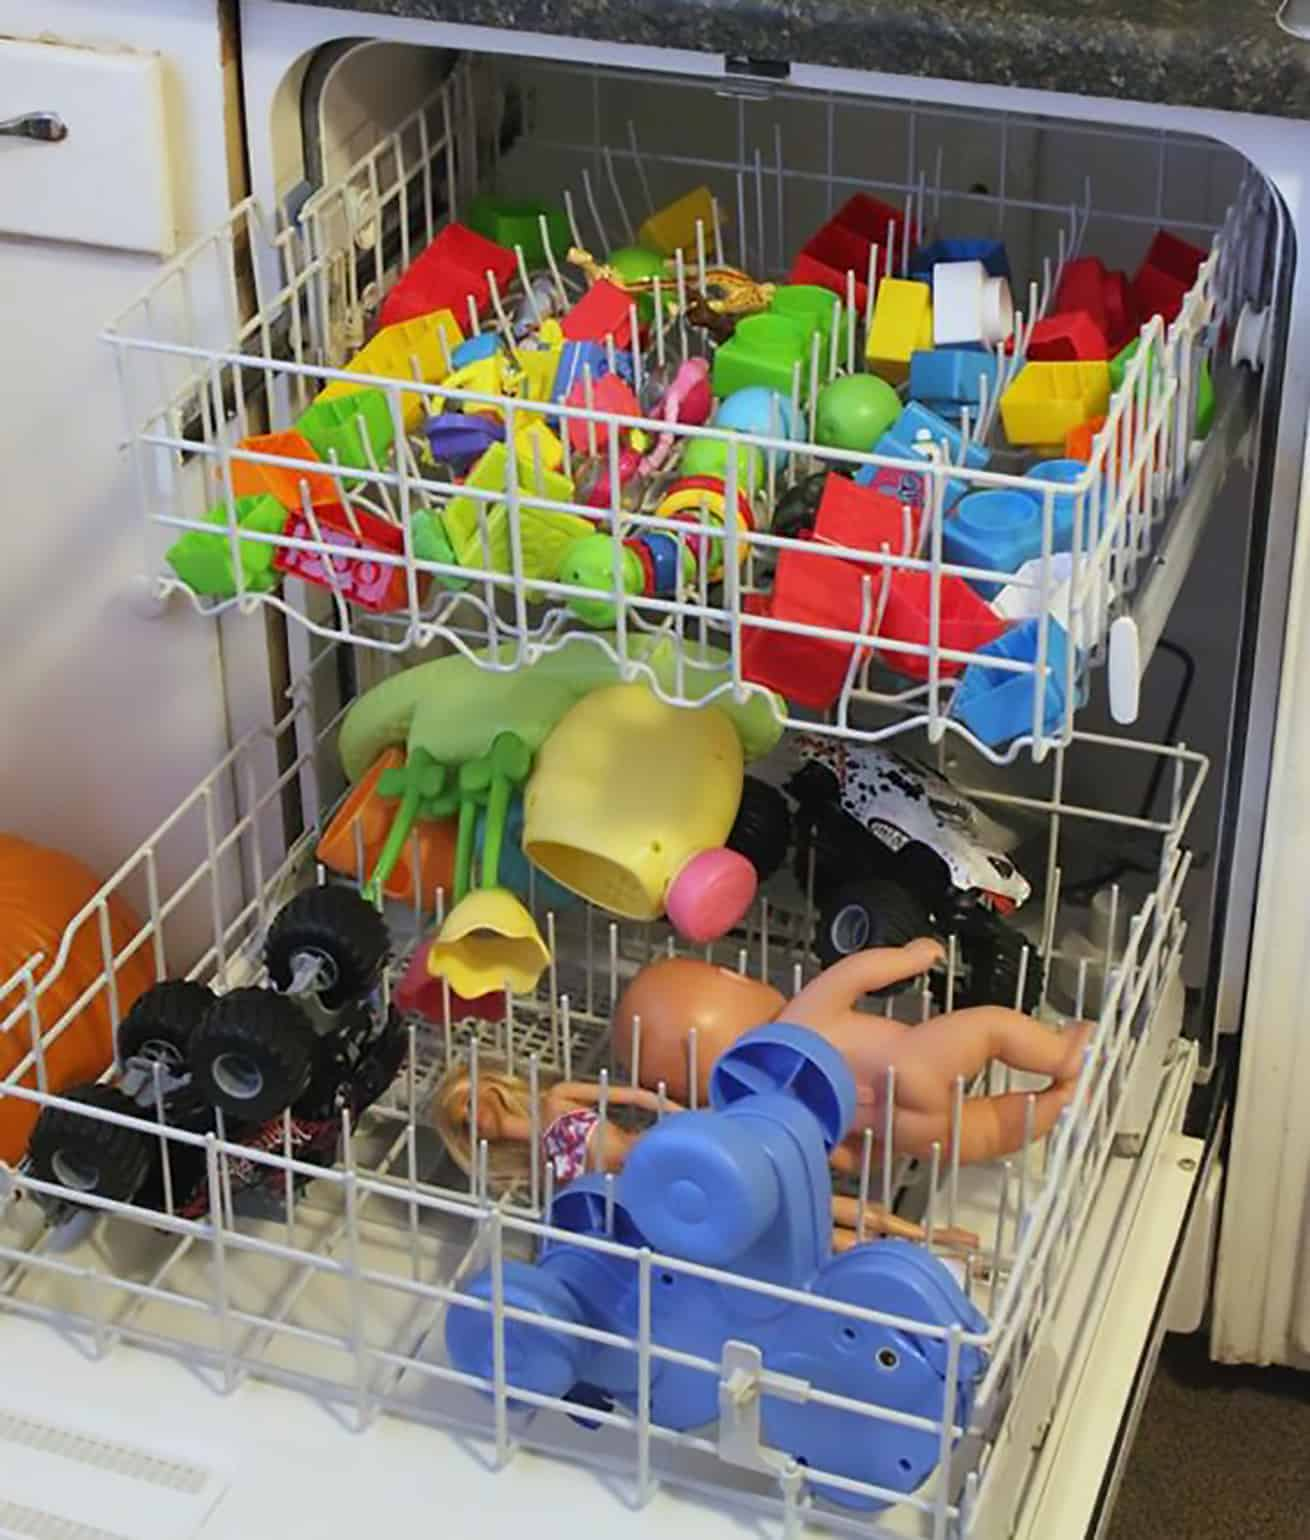 toys getting sanitized and cleaned in the dishwasher